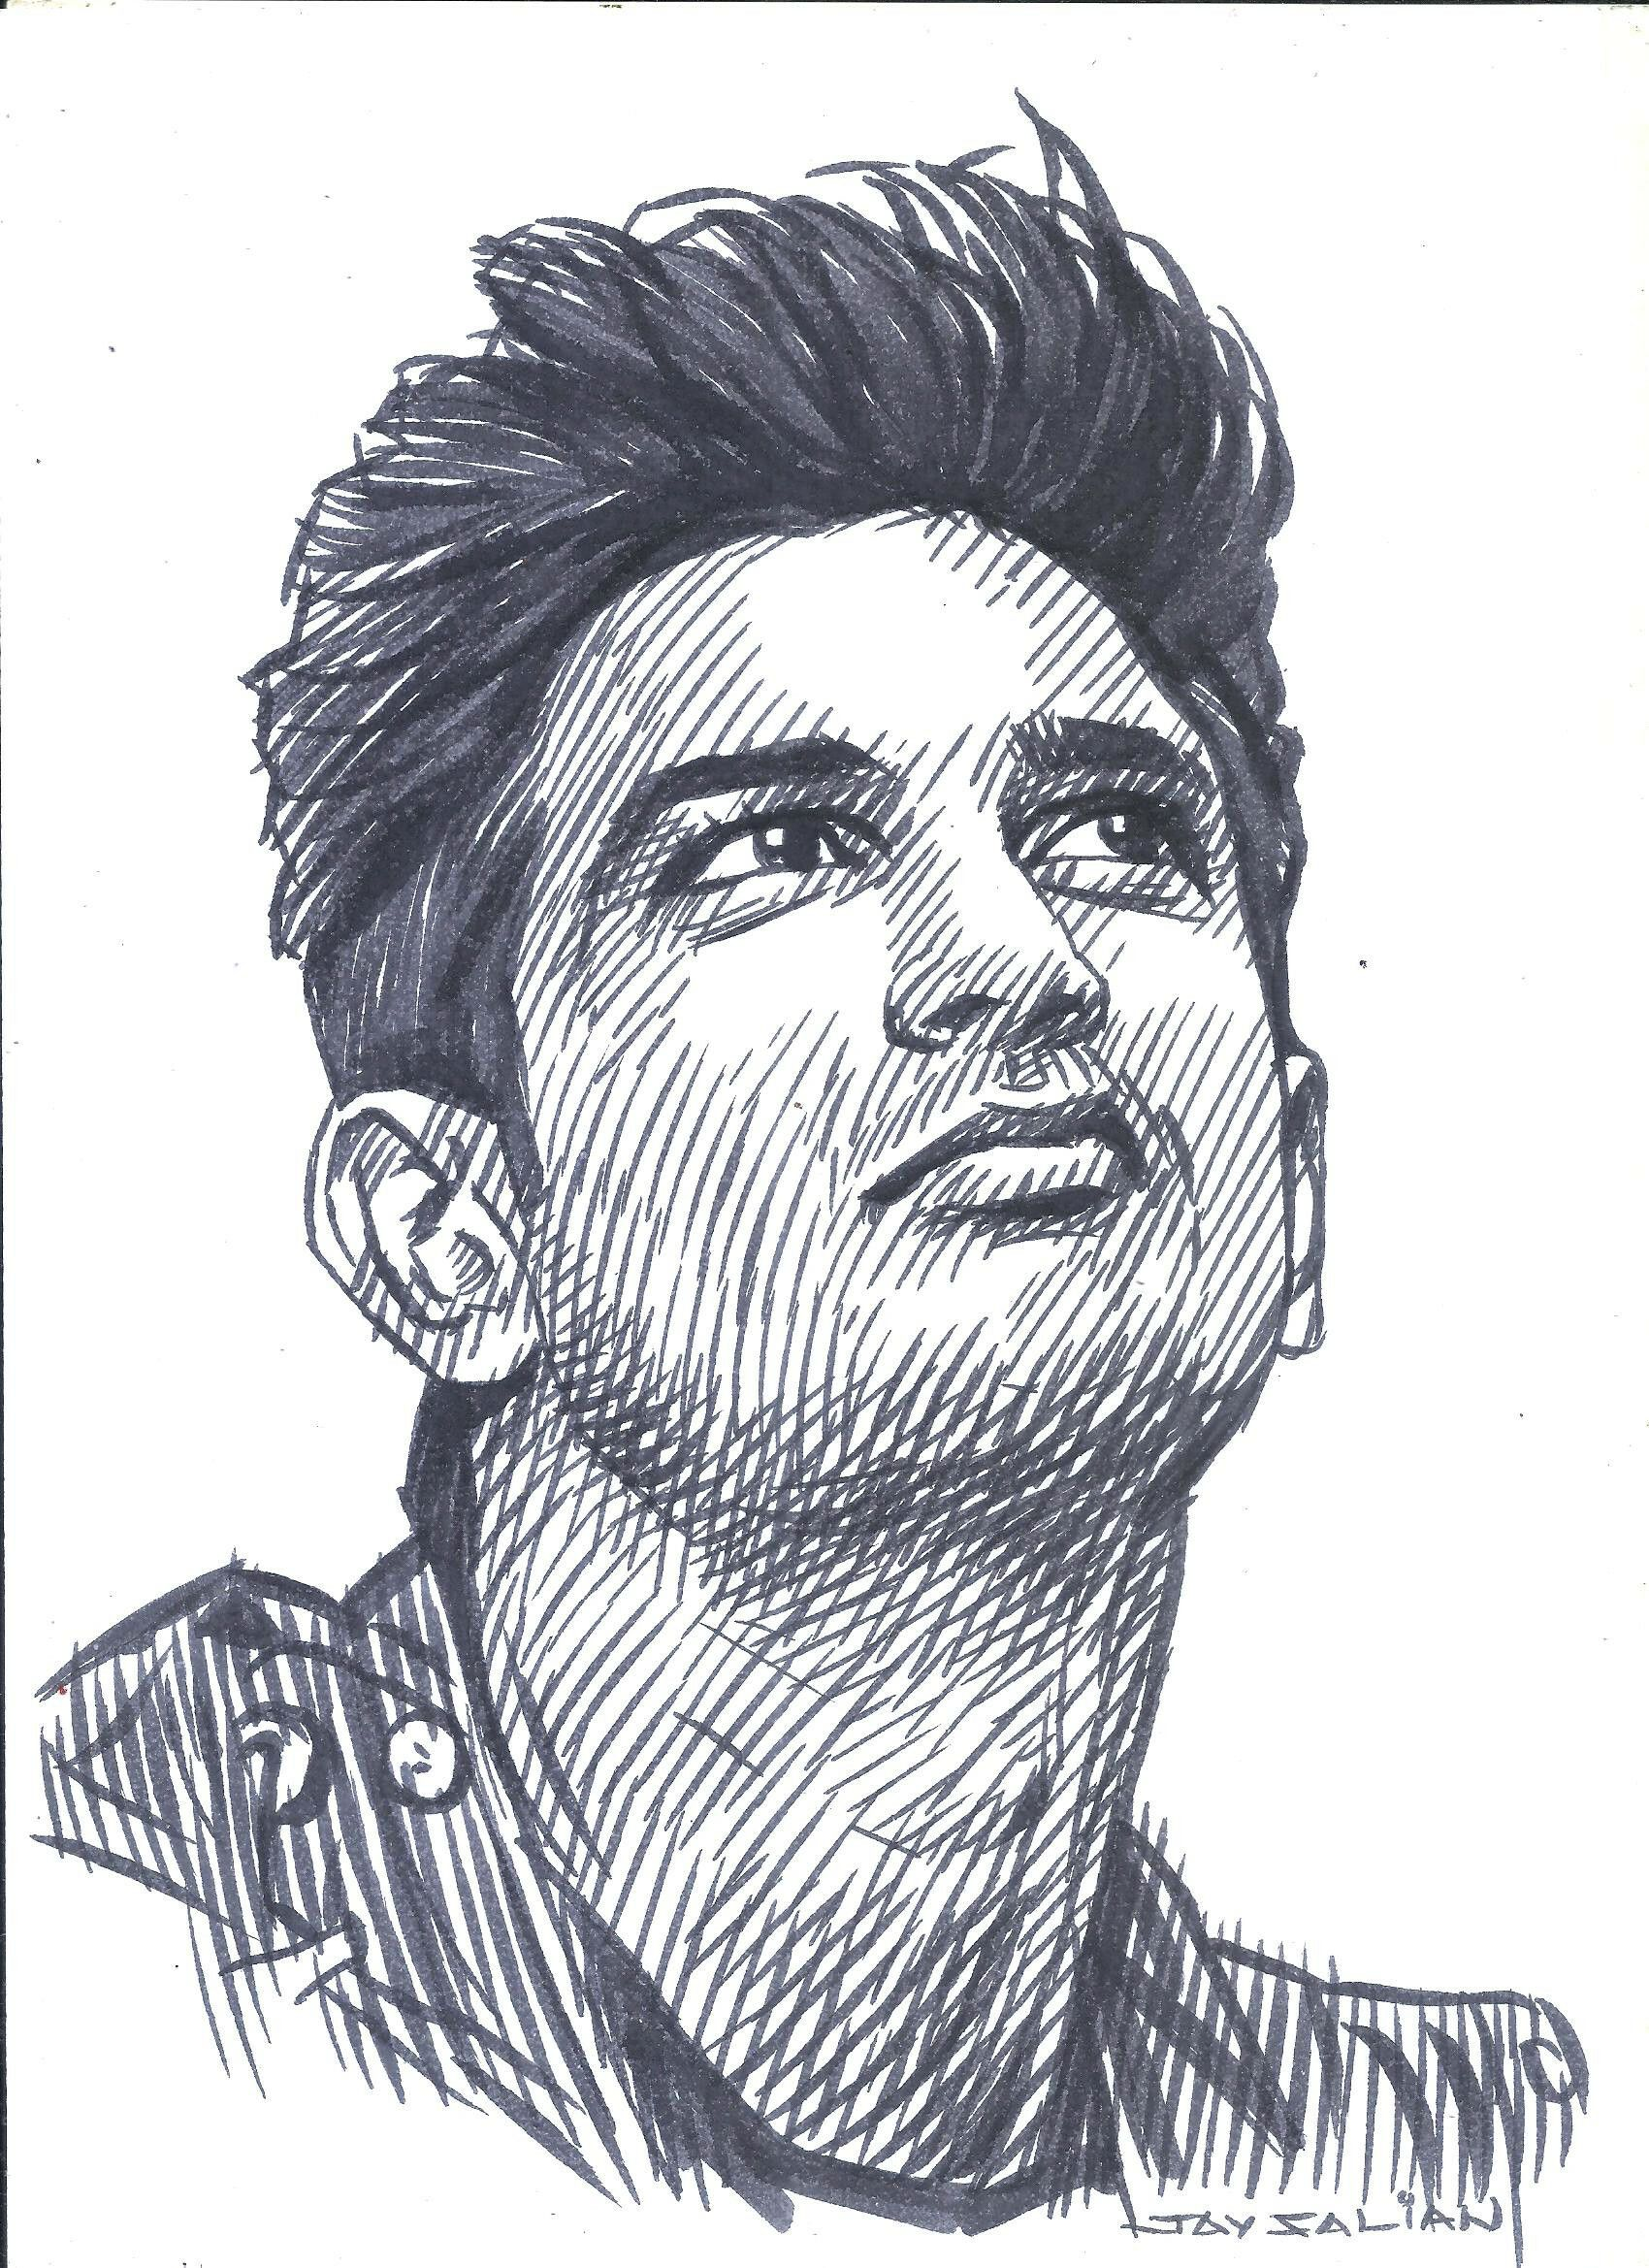 Sushant Singh Rajput Sketch Google Search In 2020 Celebrity Drawings Cats Art Drawing Superhero Sketches